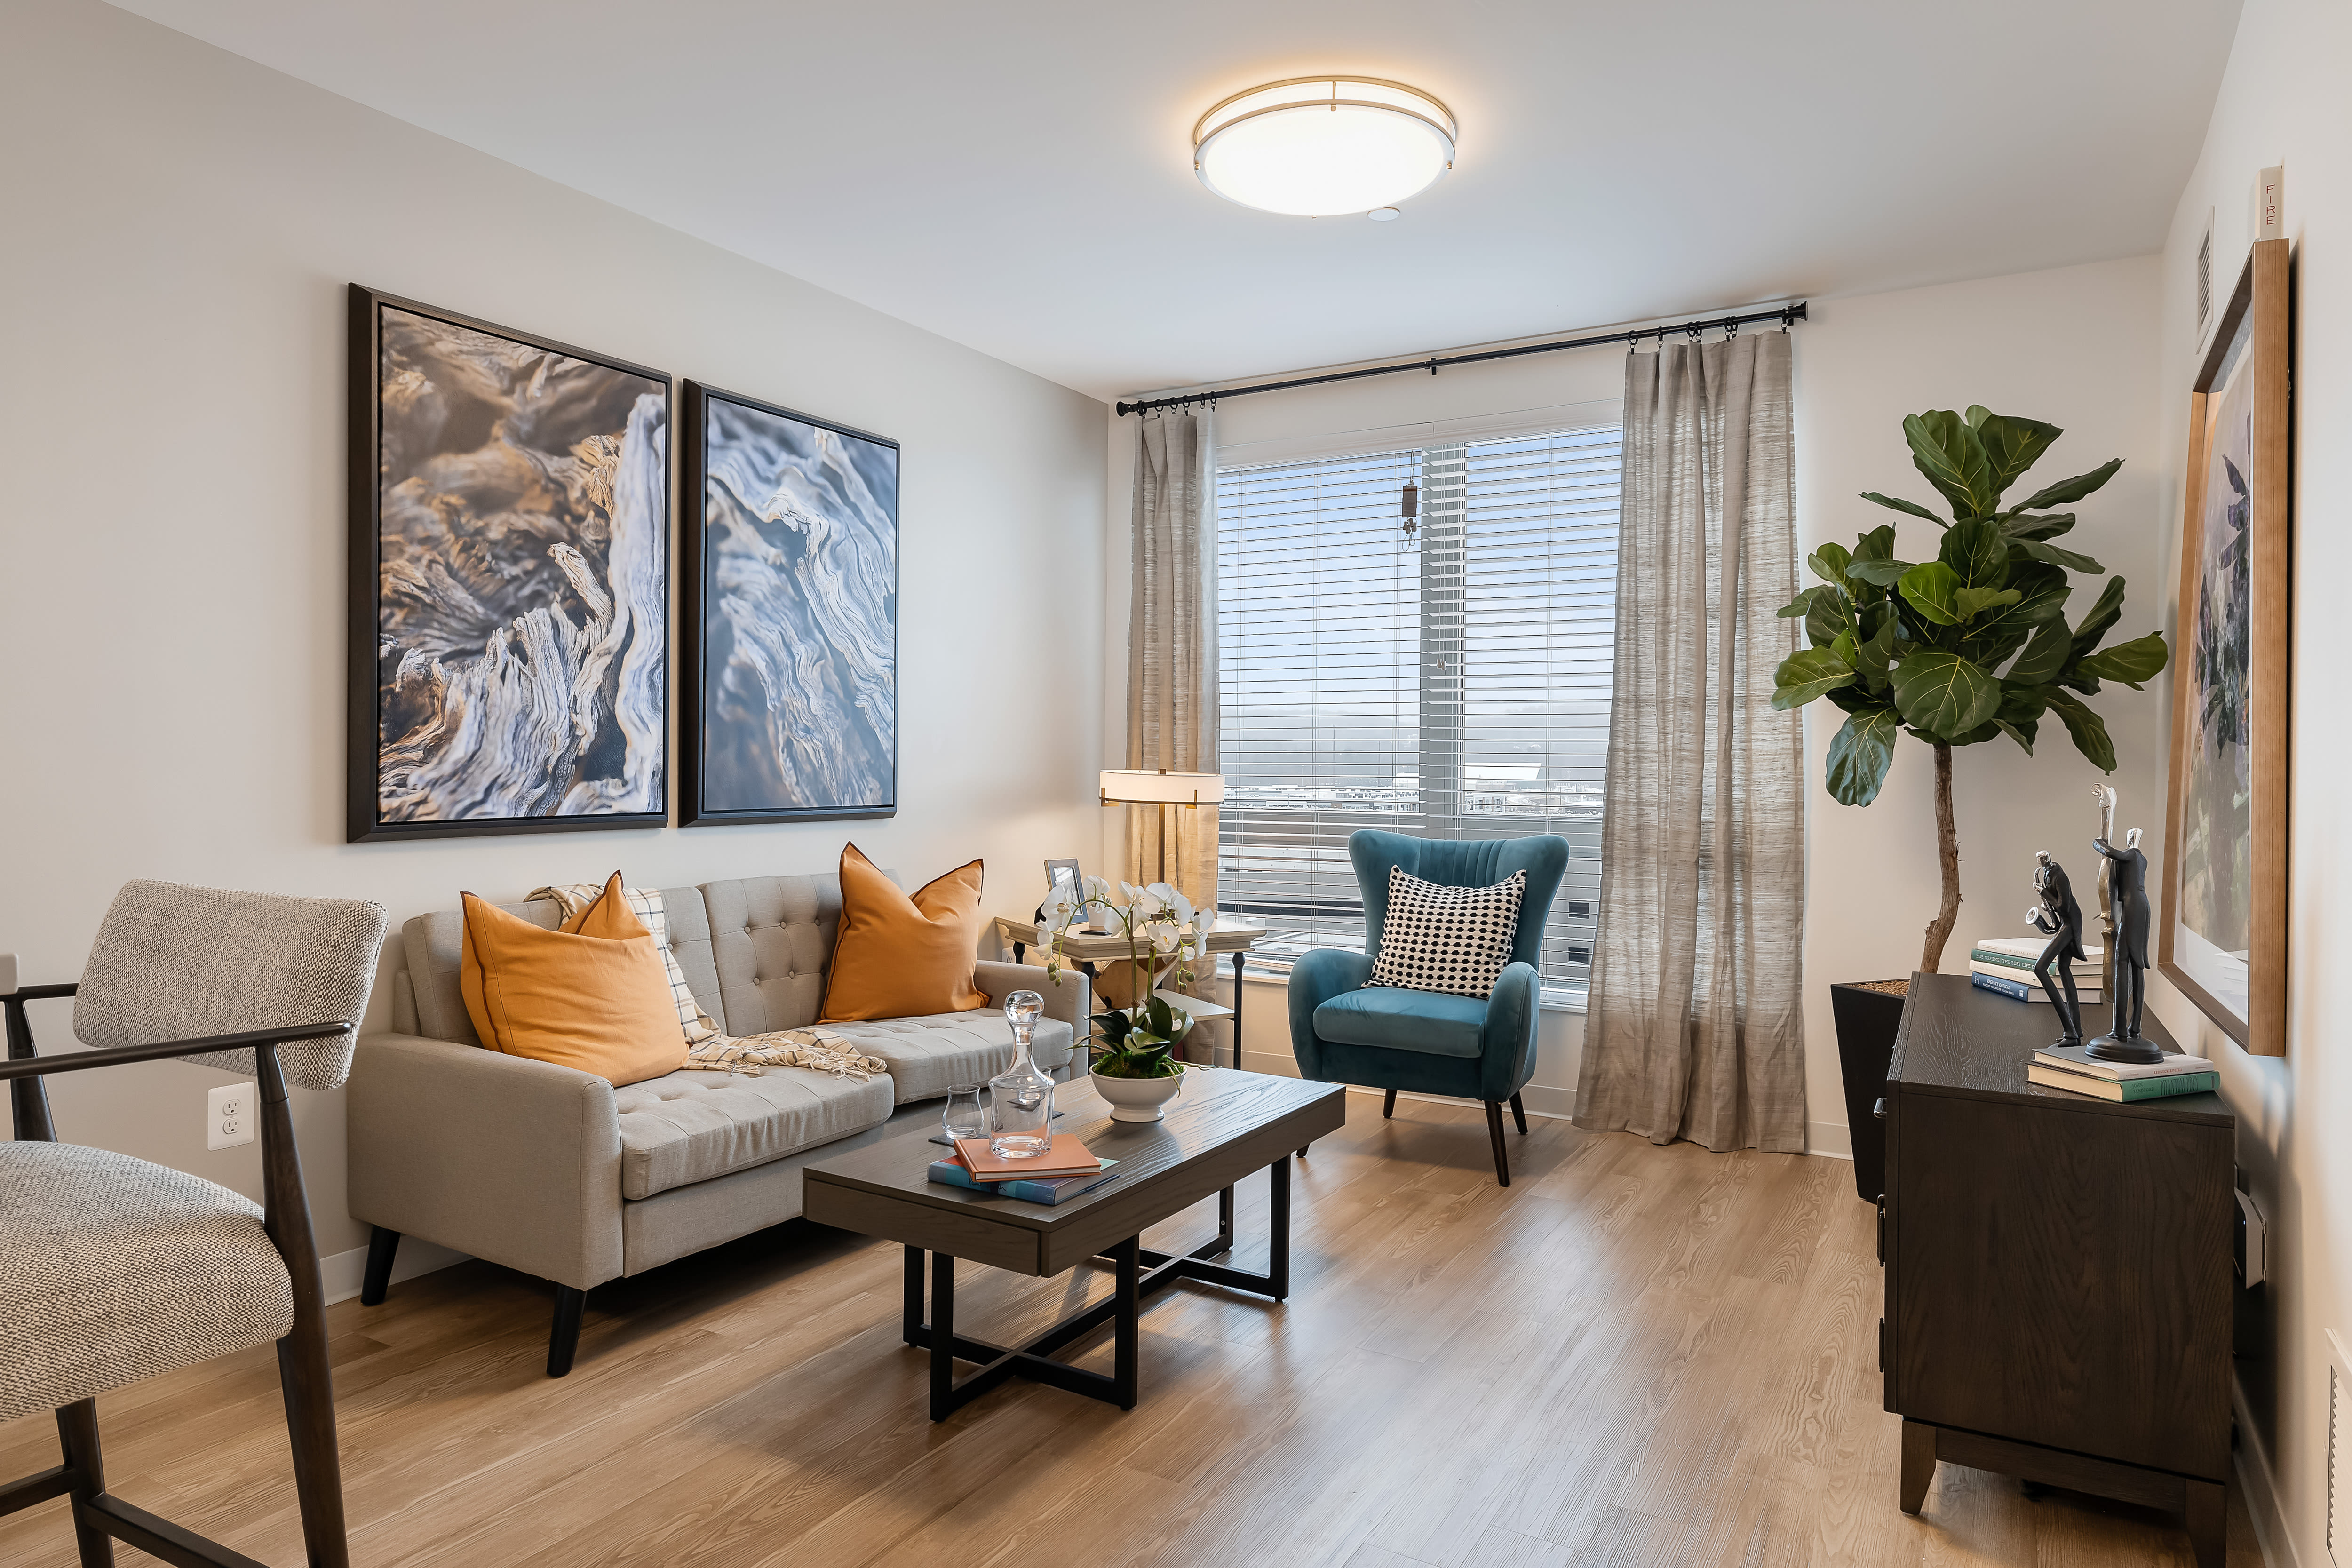 Furnished living room at Anthology of King of Prussia – Now Open in King of Prussia, Pennsylvania